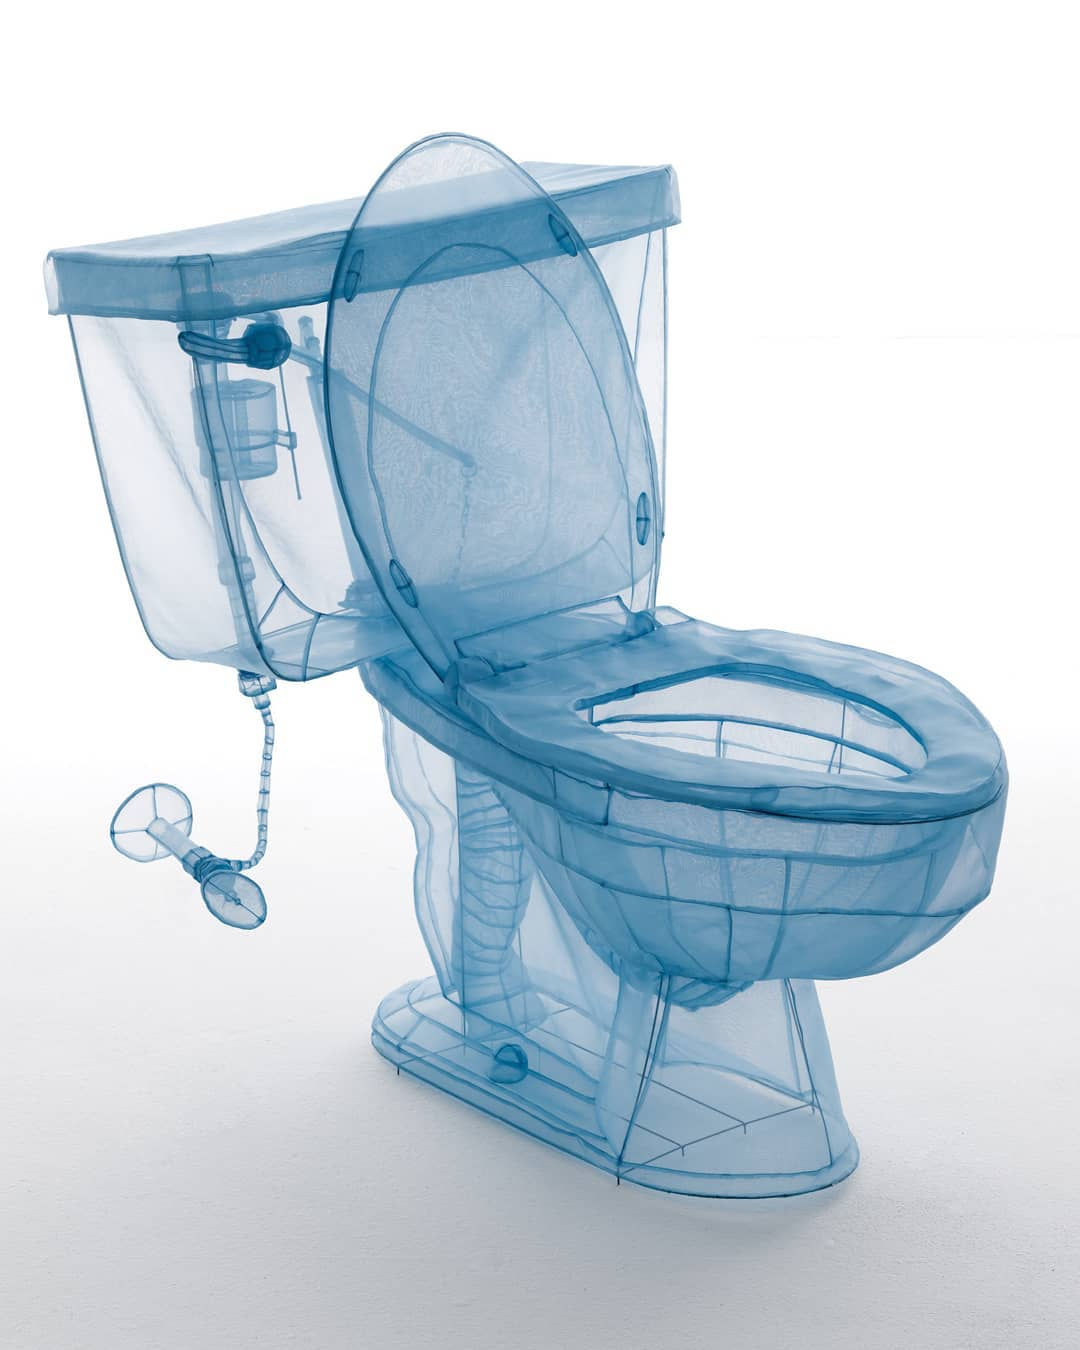 What Do You Need To Fix Your Bathroom Plumbing Basics L Essenziale